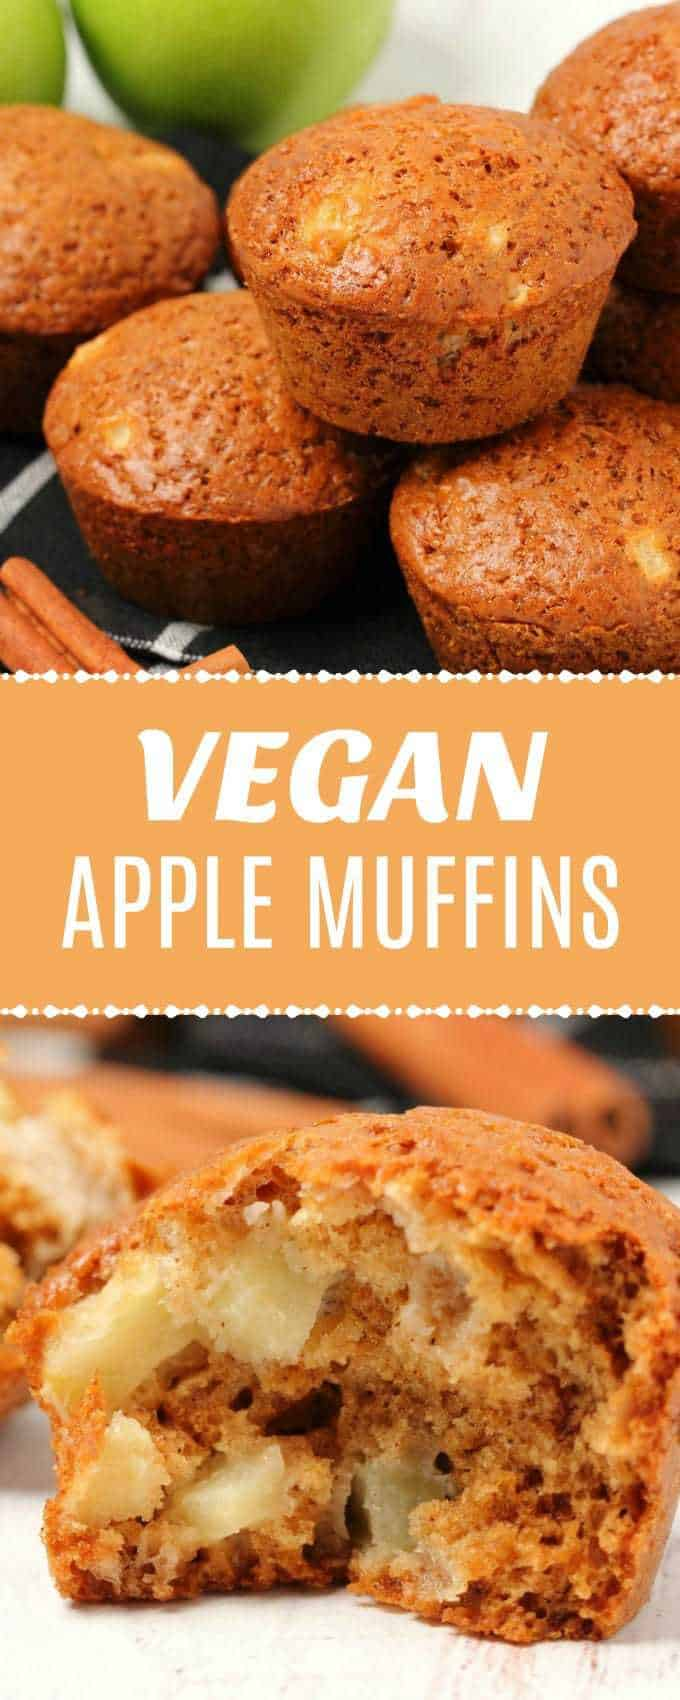 Wonderfully soft and moist vegan apple muffins packed with delicious cinnamon flavor and whole apple pieces. Perfect for breakfast or dessert! #vegan #muffins #breakfast #dairyfree #veganrecipes | lovingitvegan.com